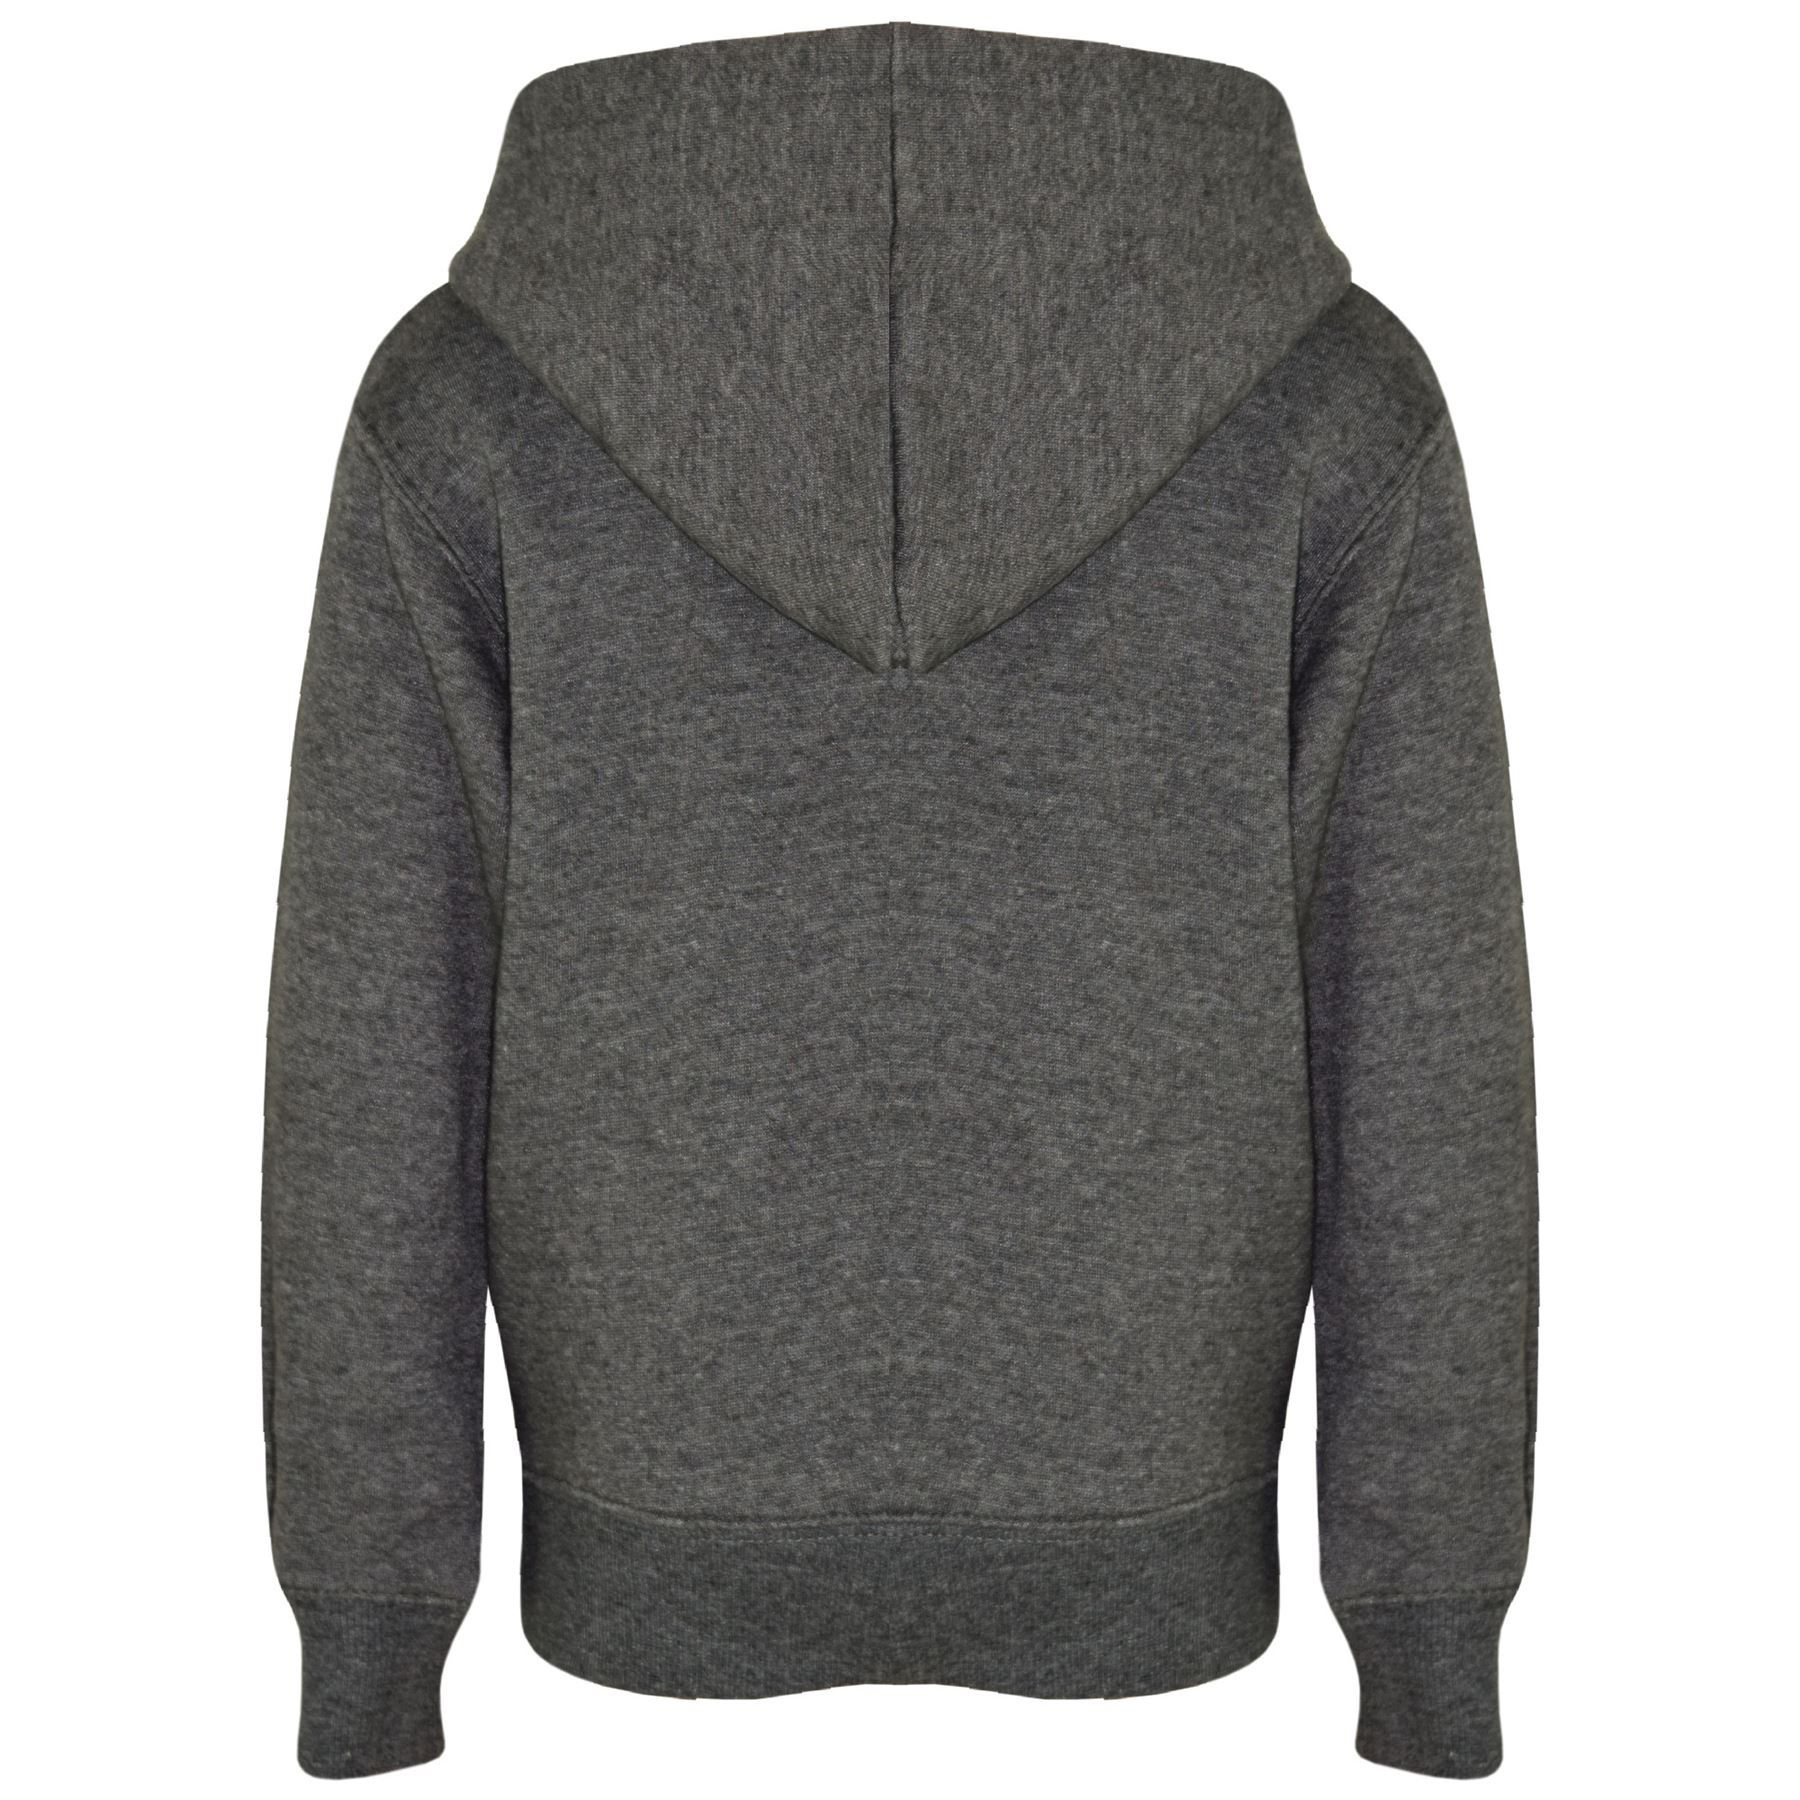 f00cb10f Details about Kids Girls Boys Sweatshirt Tops Plain Charcoal Hooded Jumpers  Hoodies 2-13 Year